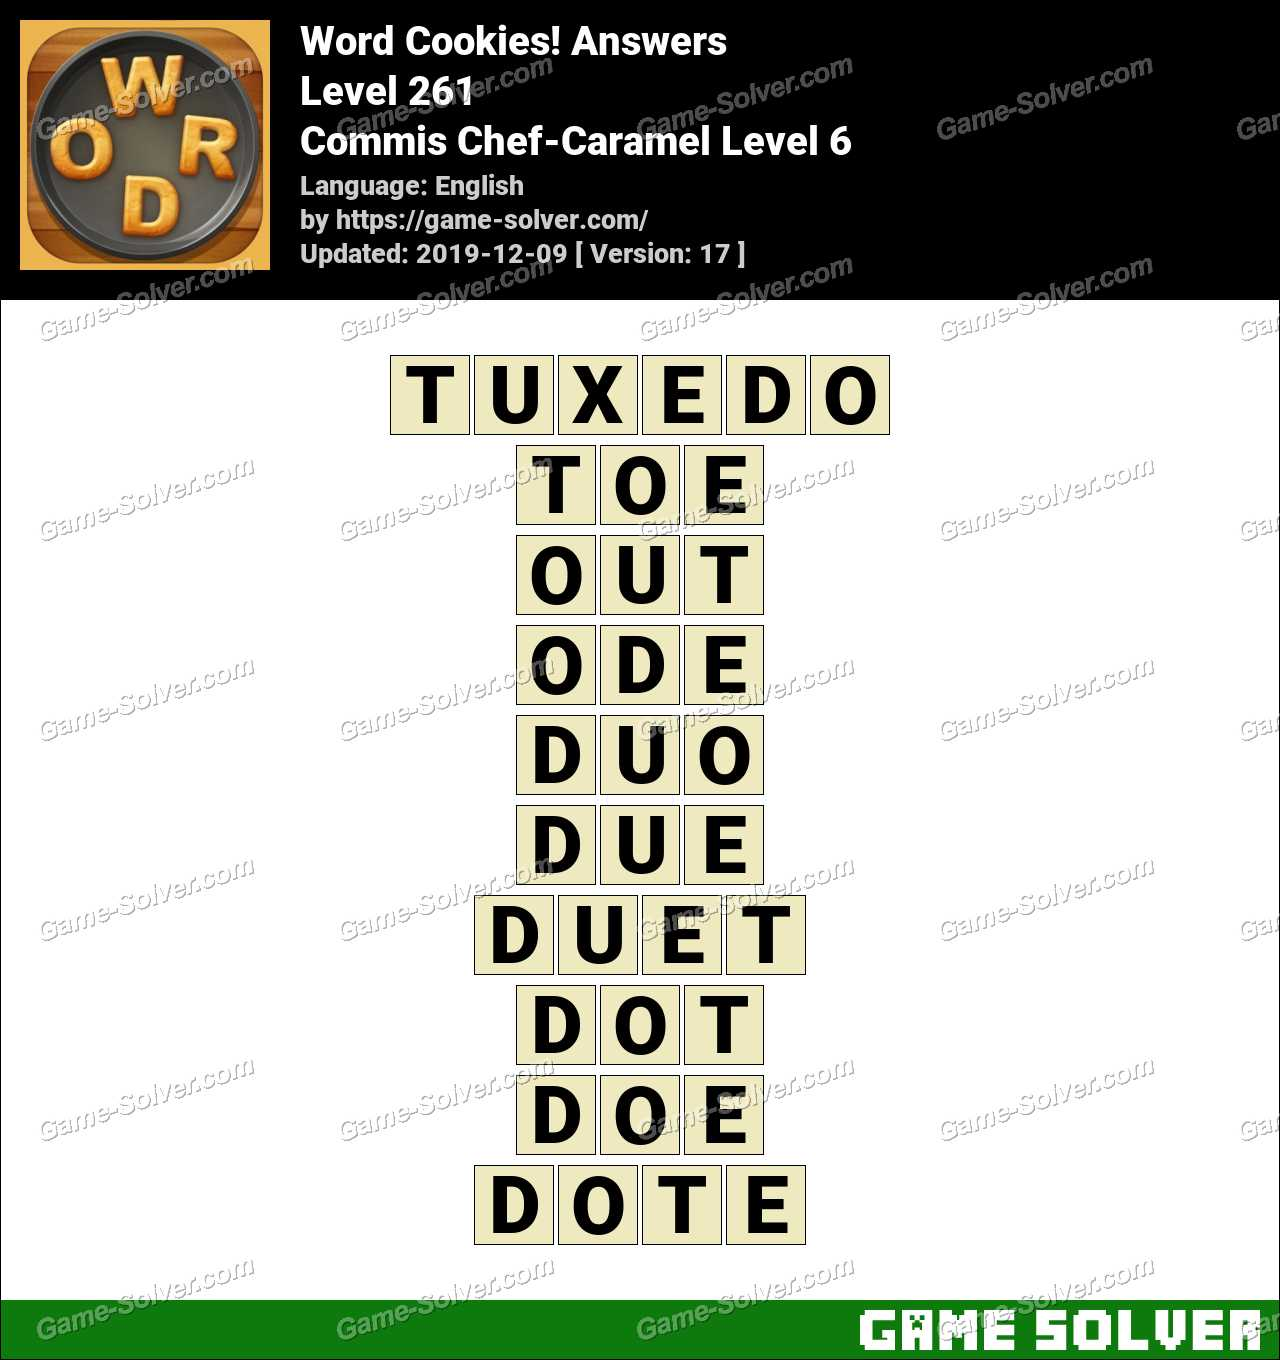 Word Cookies Commis Chef-Caramel Level 6 Answers